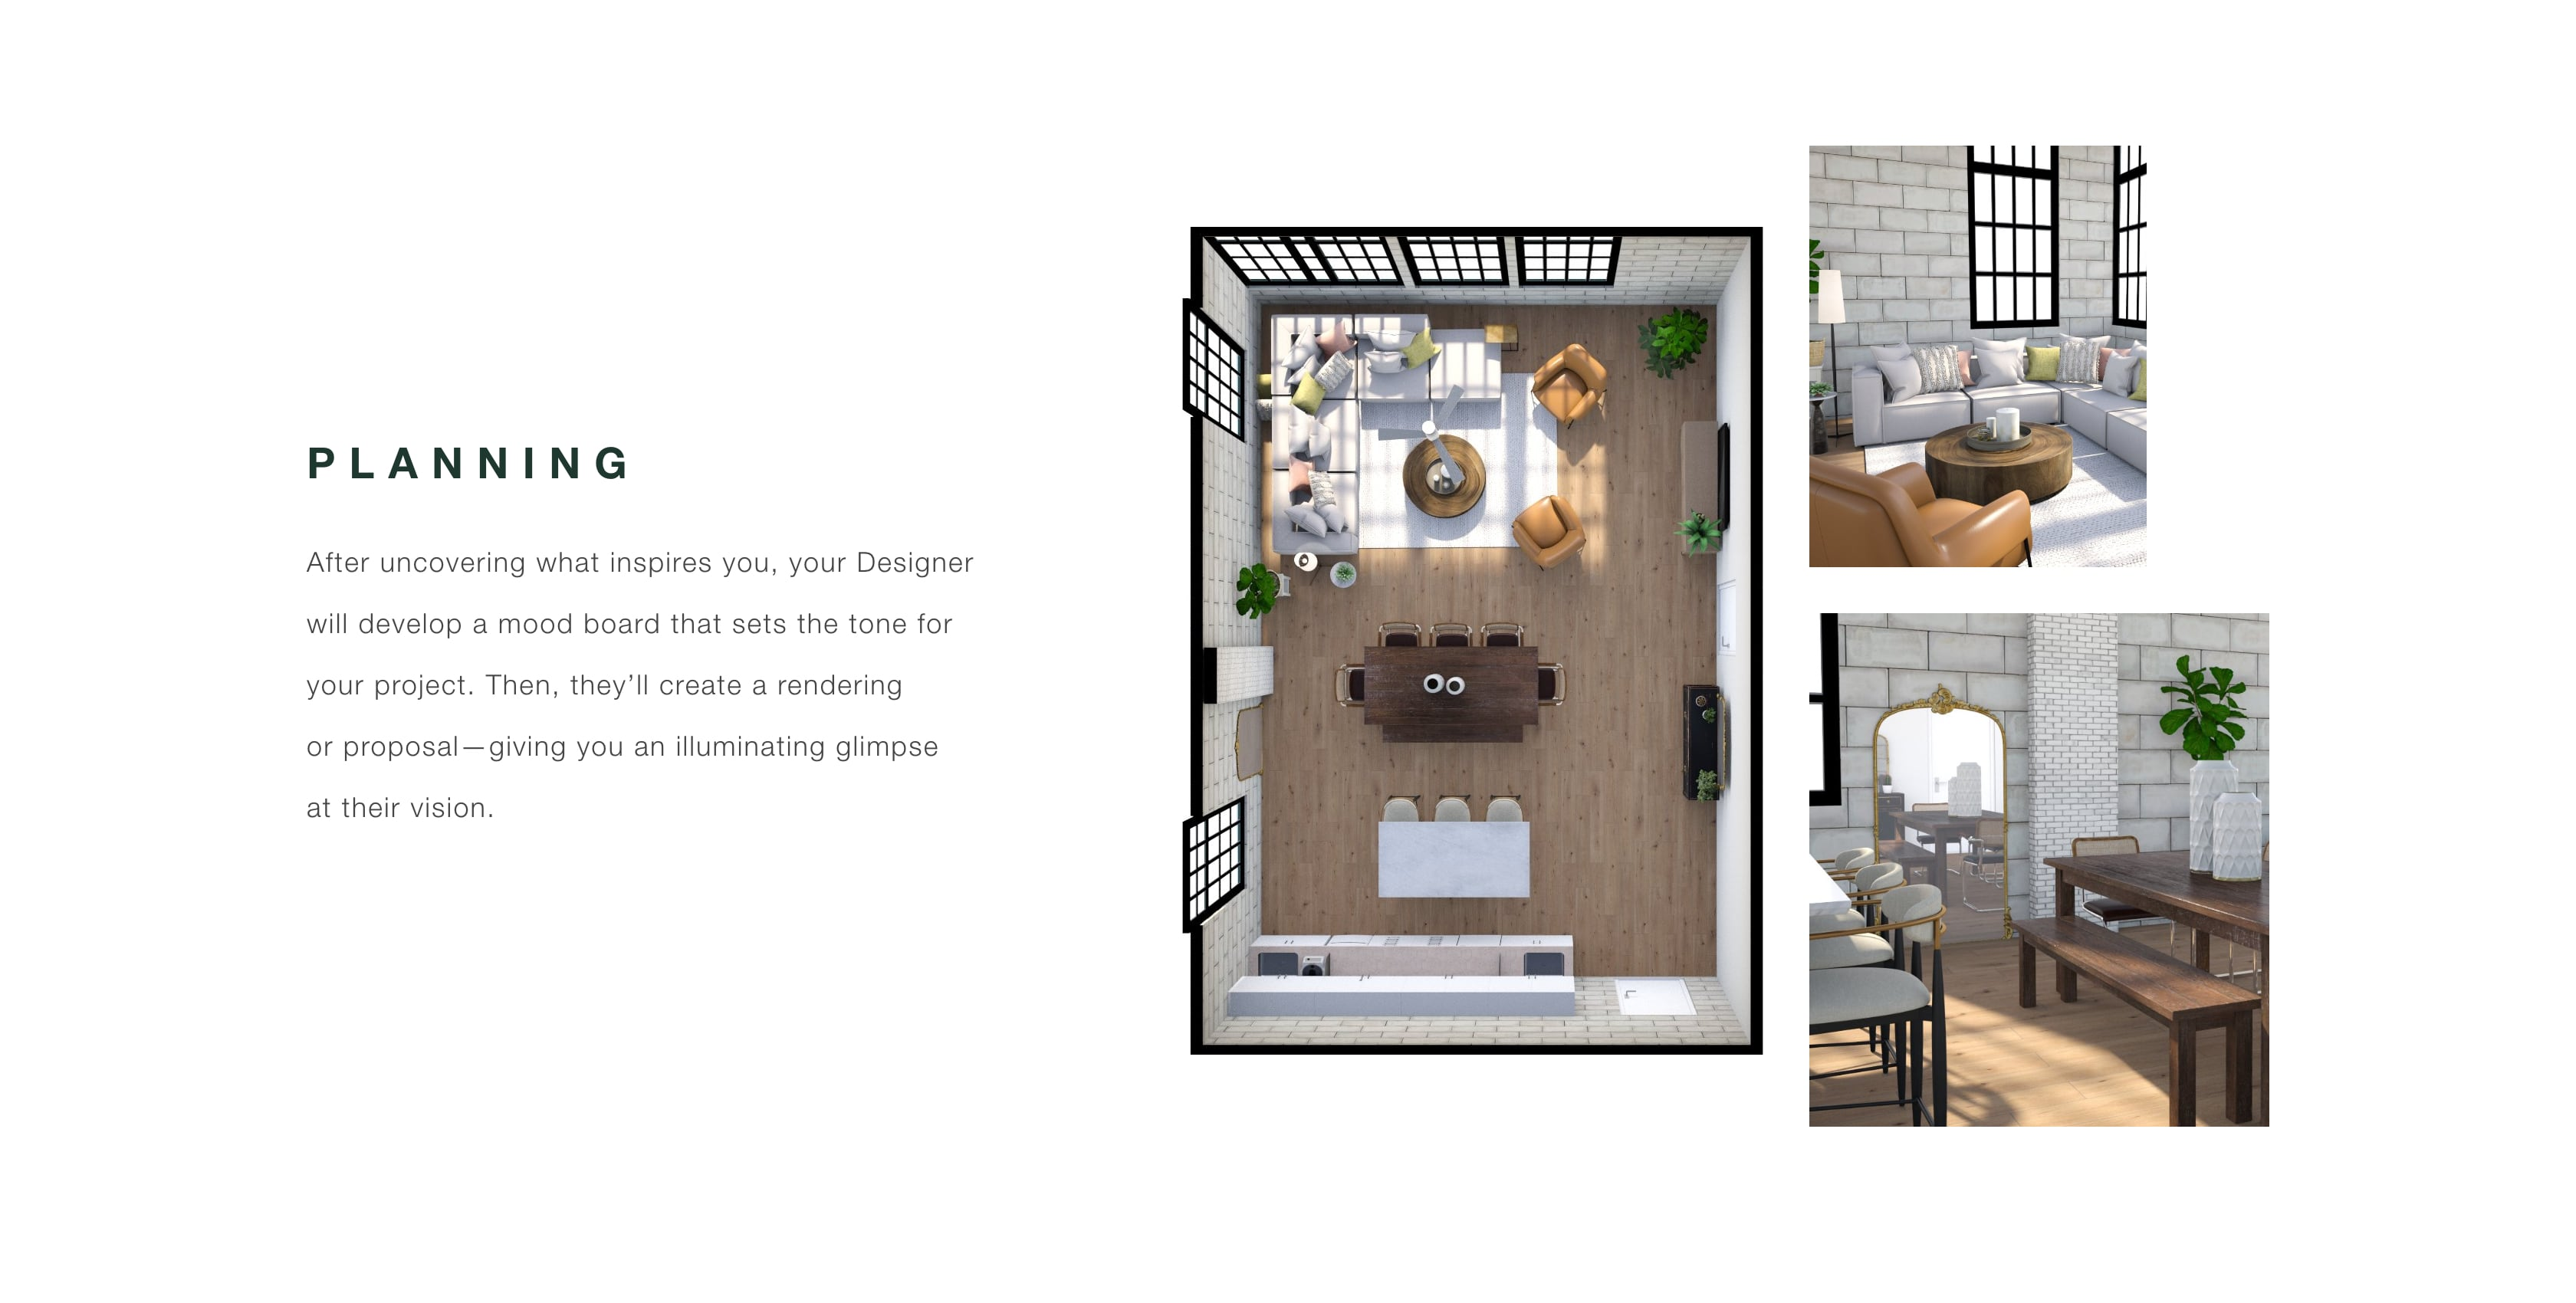 Planning - Mood Boards and Renderings